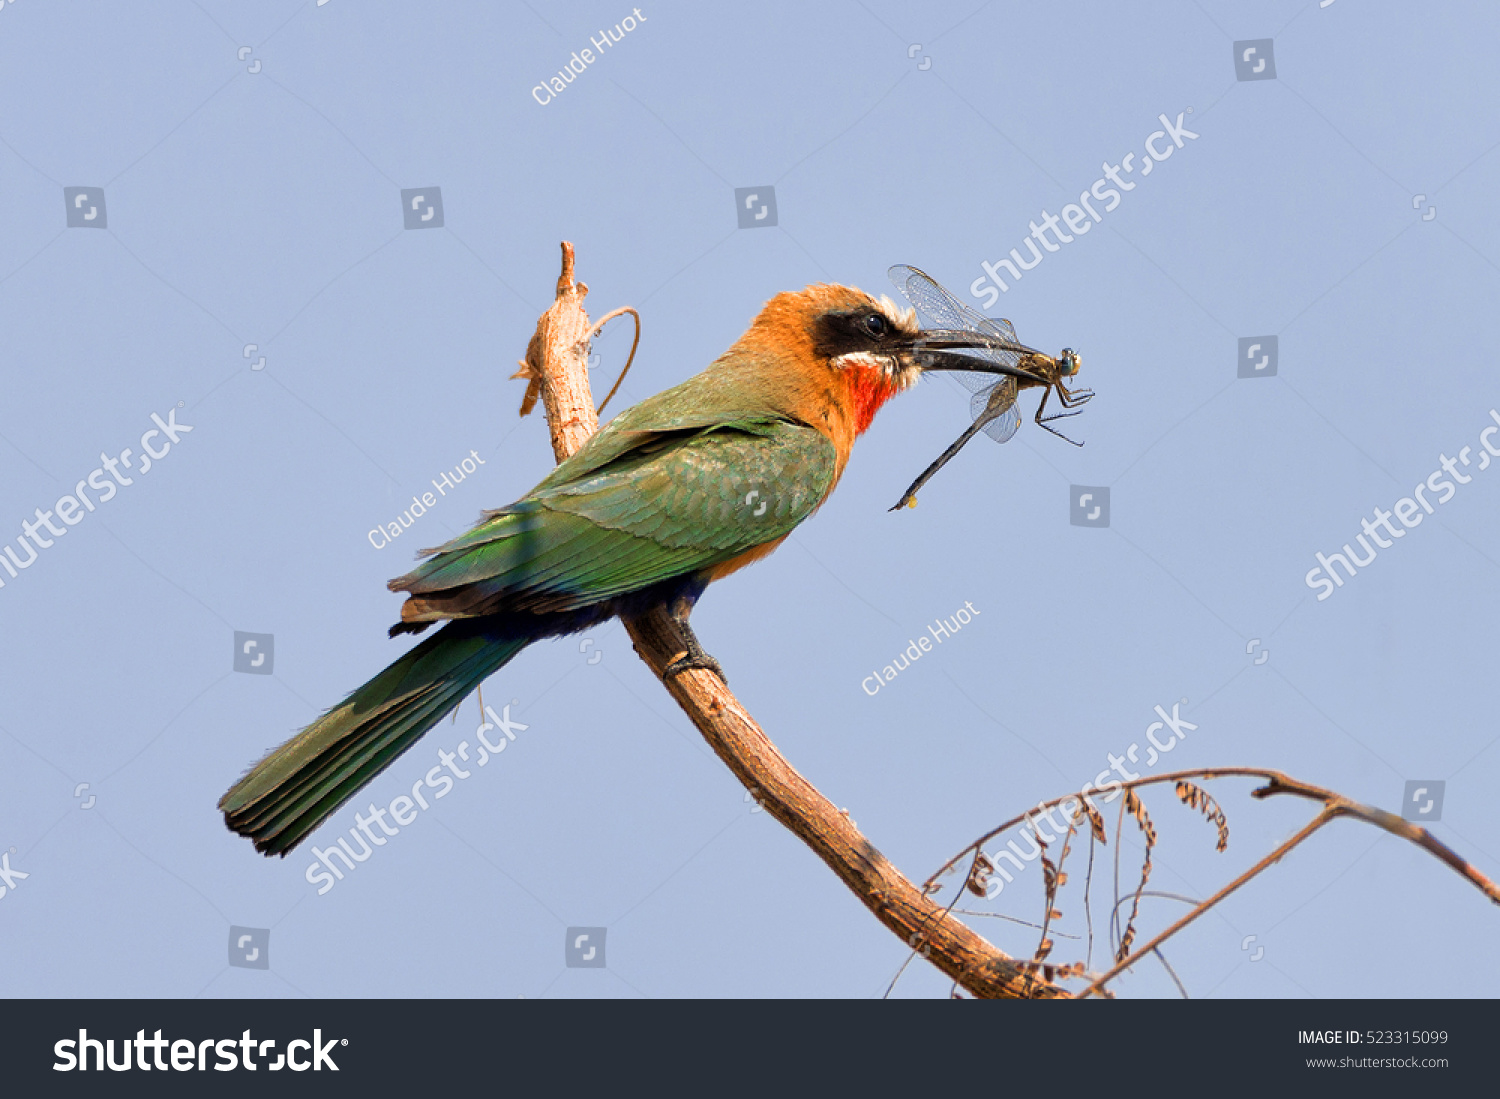 White-fronted bee-eater (Merops bullockoides) perched on a branch with a dragonfly in its beak near the Kwando river in the Caprivi Strip, Namibia